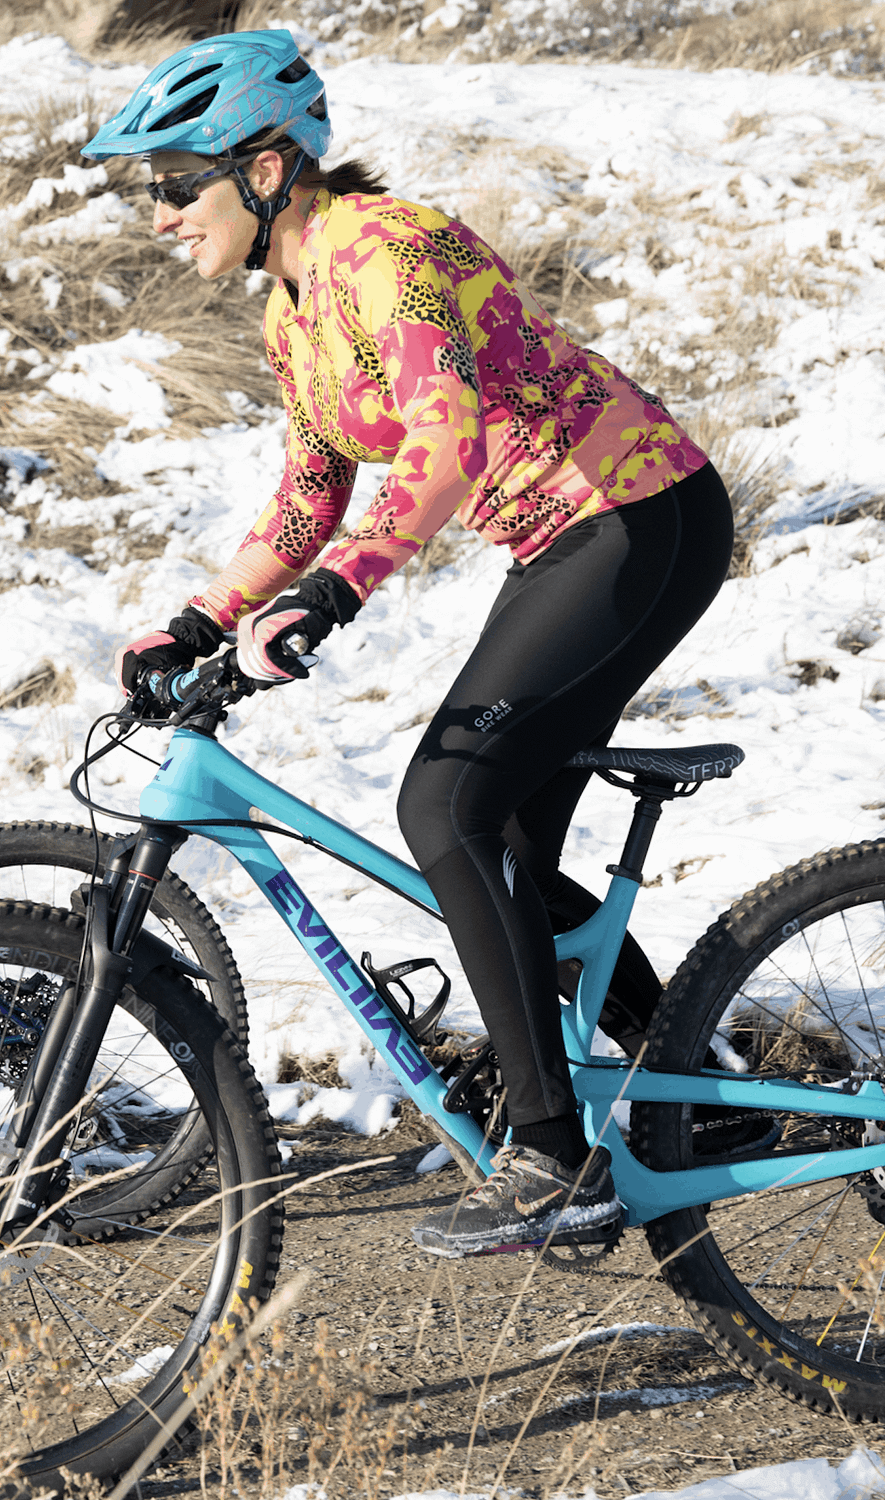 Woman riding a mountain bike in a snowy landscape, wearing Terry cycling top and windproof cycling tights